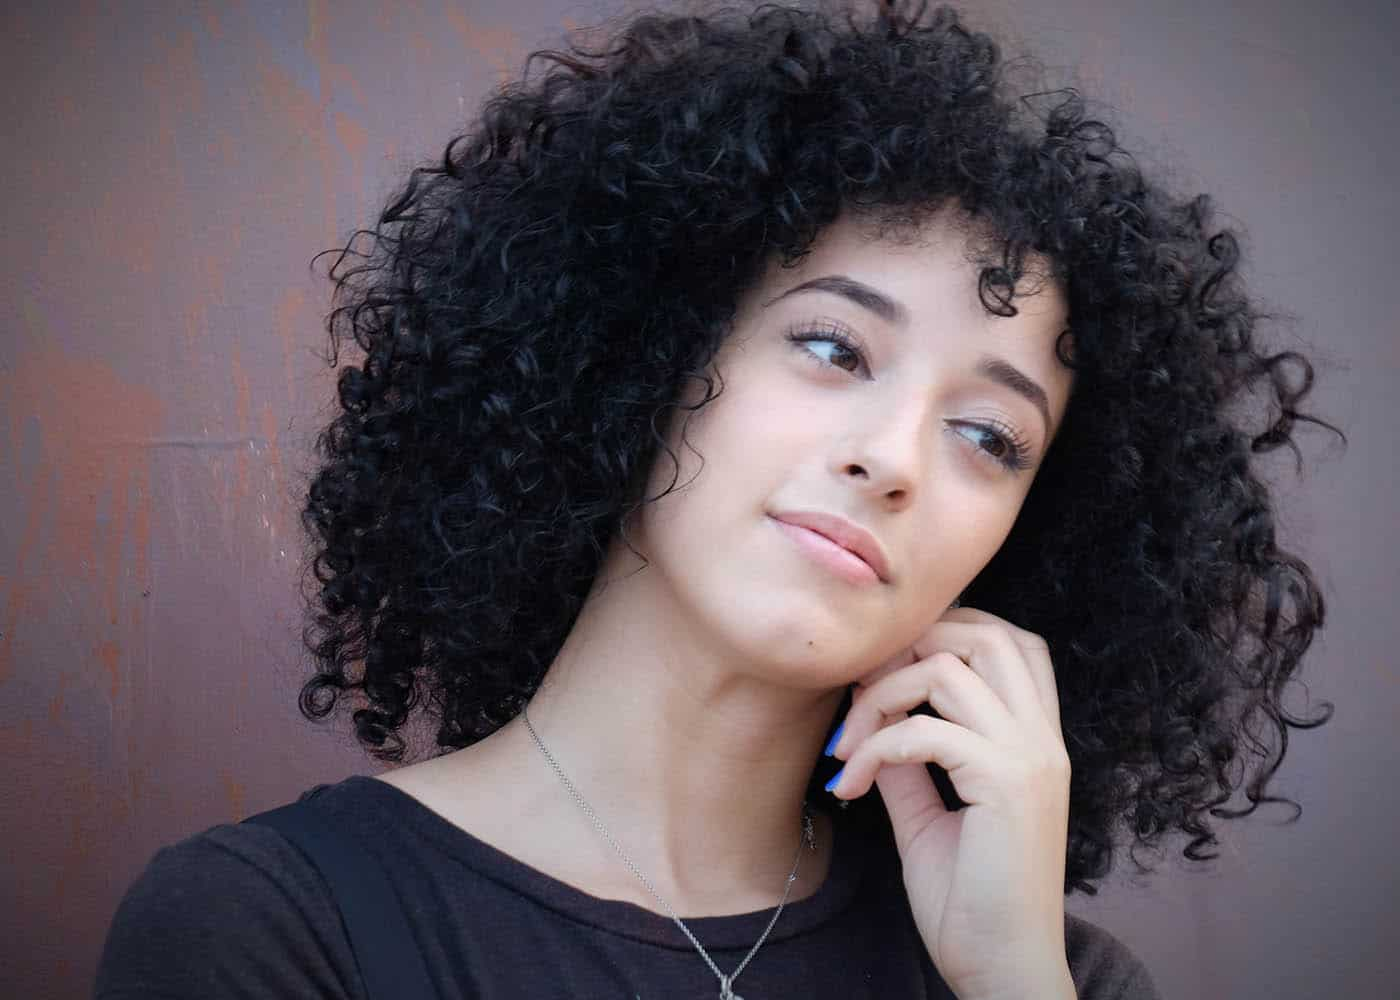 Perm Rod Hairstyles On Short Hair Curls Natural Hair And Relaxed Hair Hair Trends